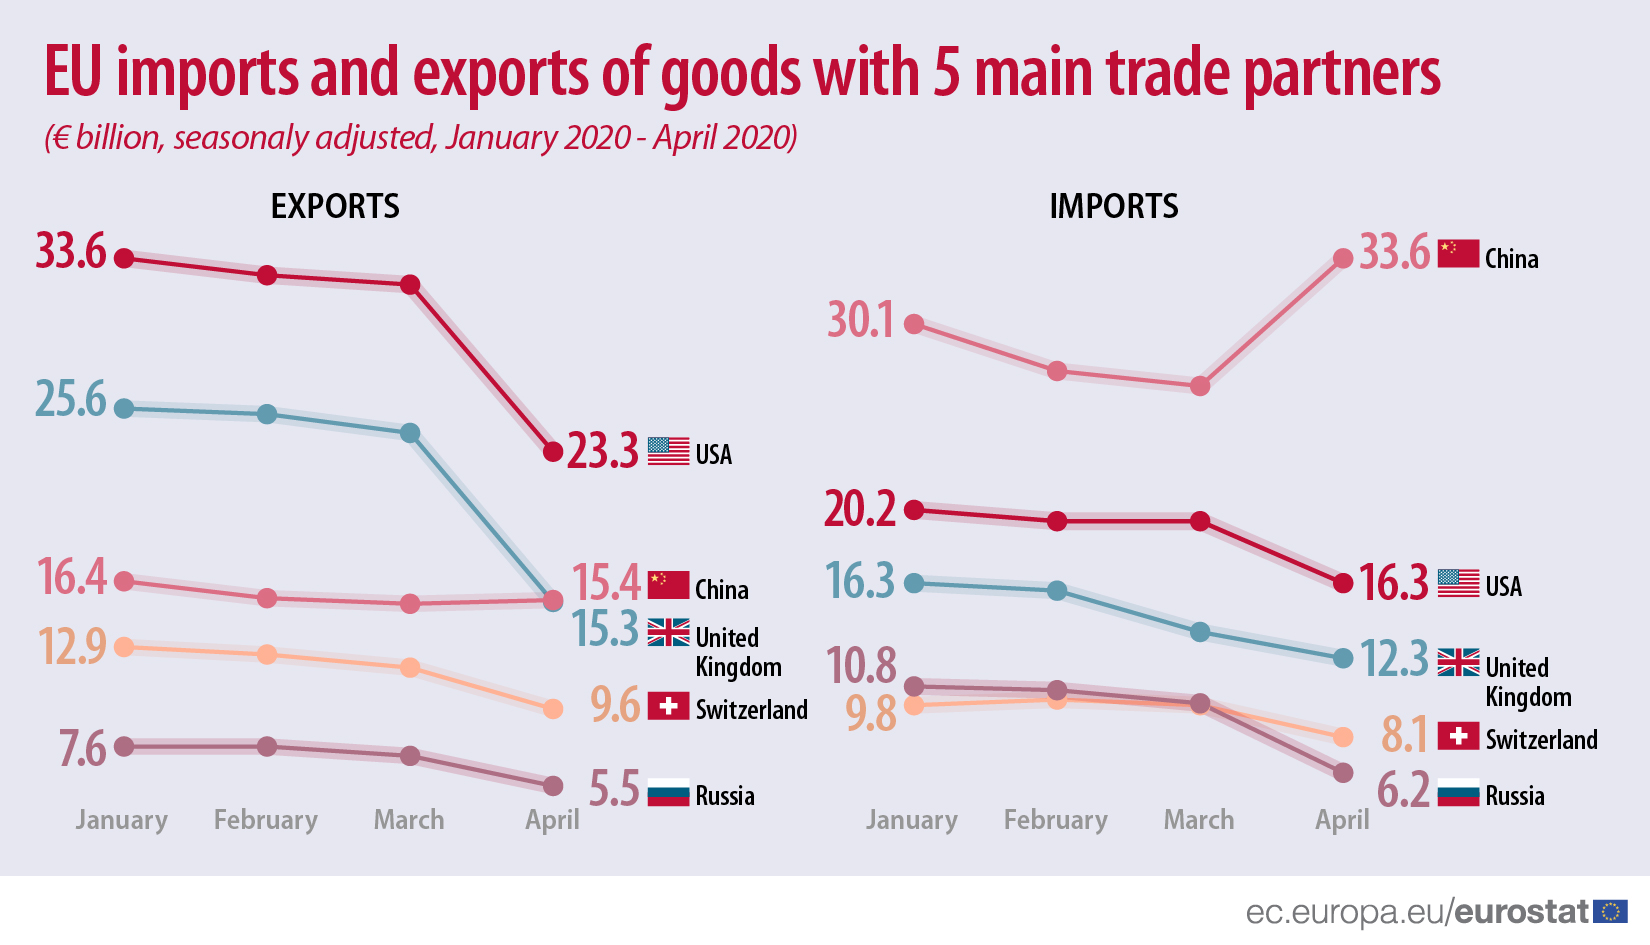 EU imports and exports of goods with 5 main trade partners